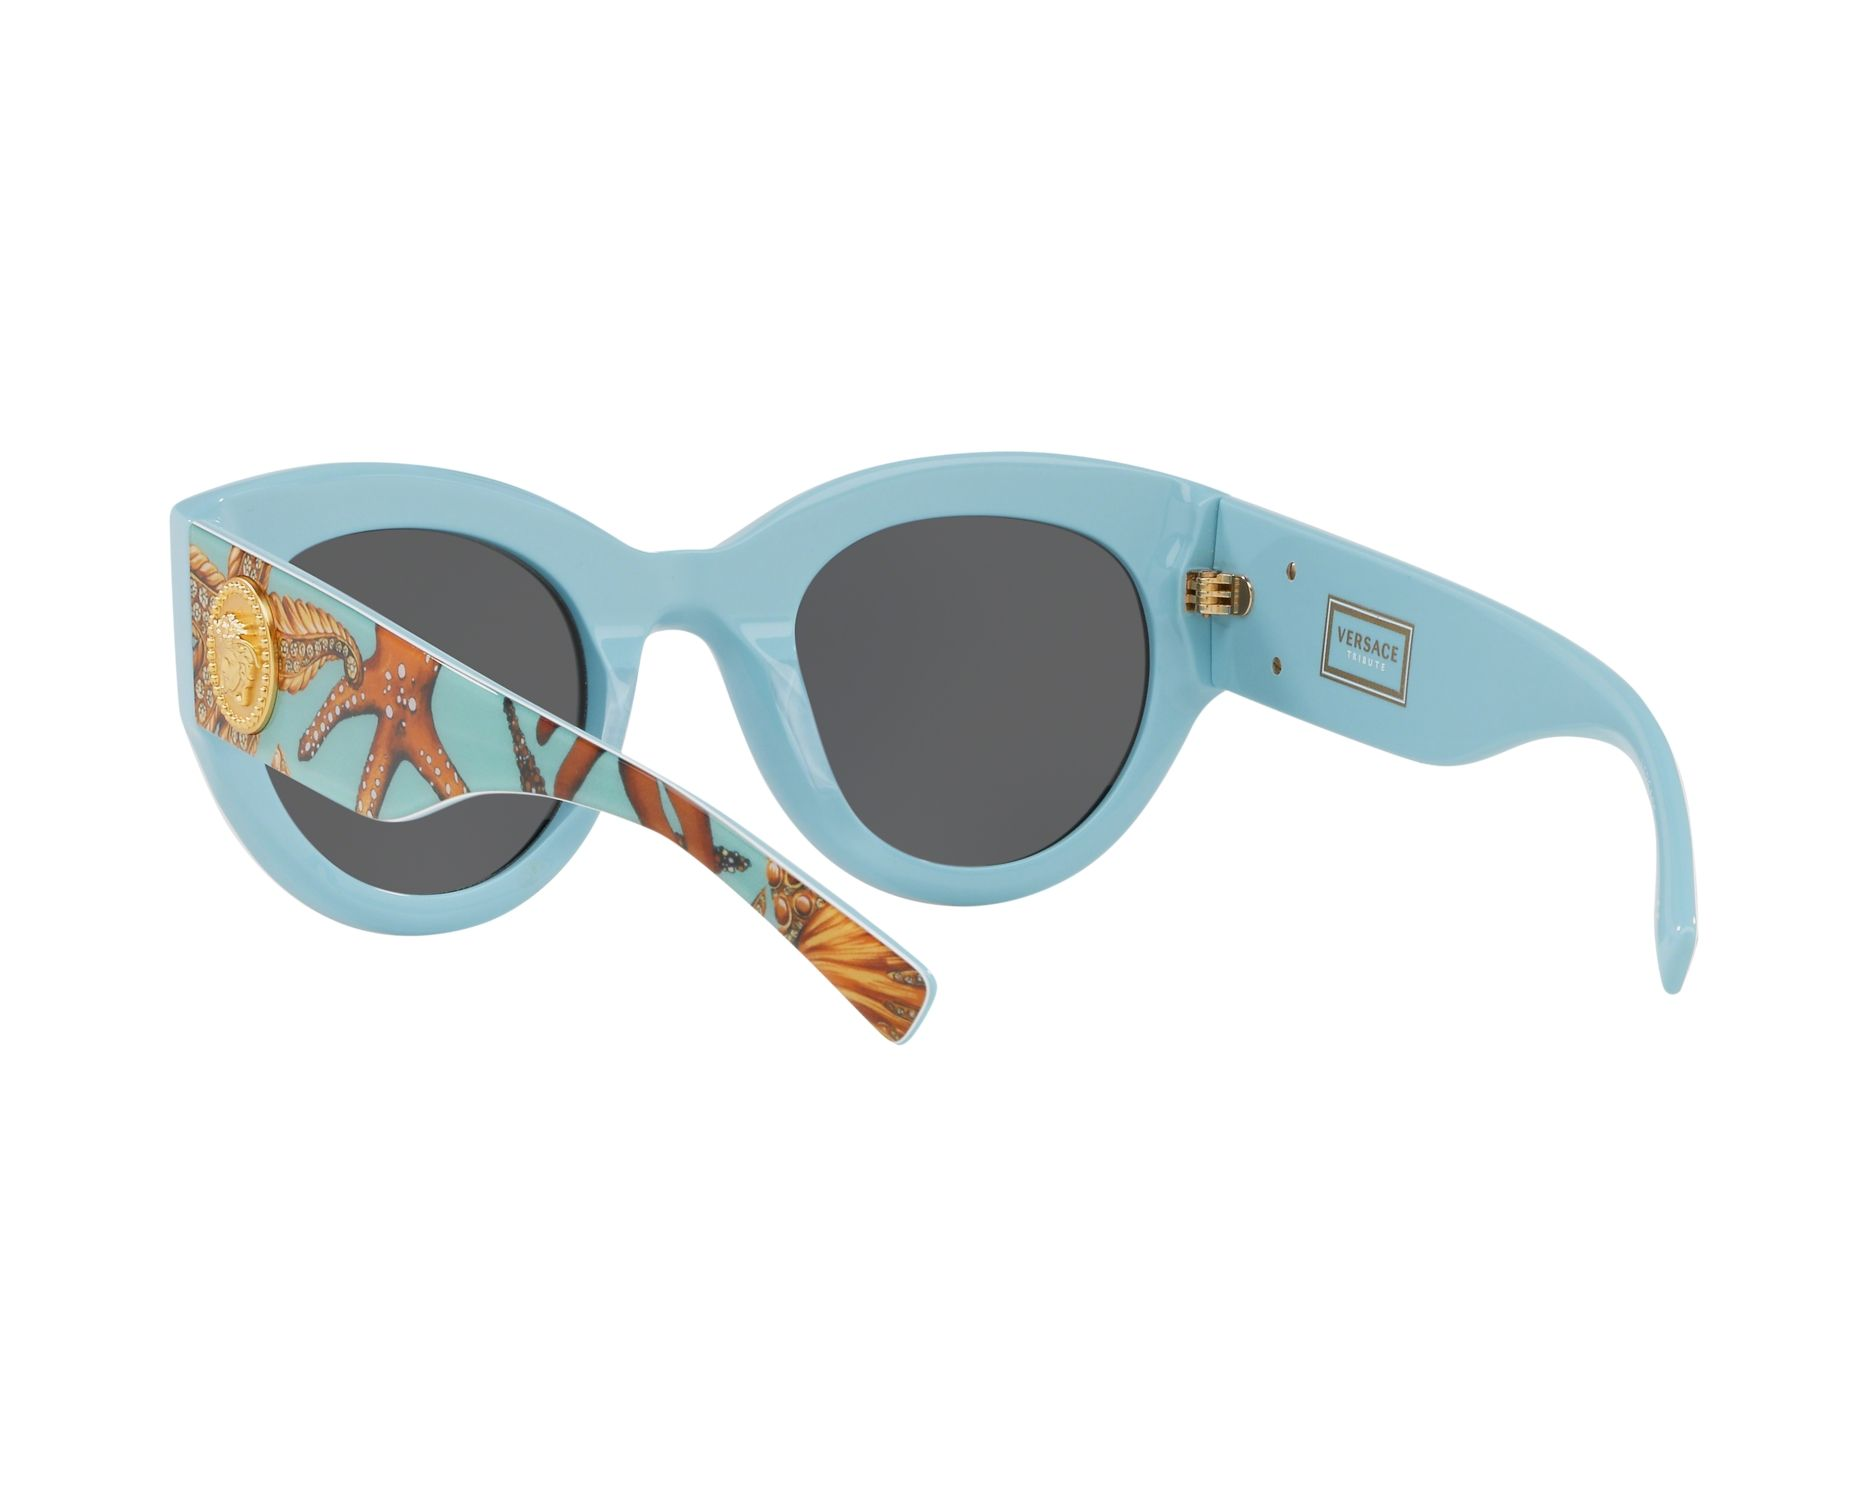 69a511aaed492 Sunglasses Versace VE-4353 528487 51-25 Green Turquoise 360 degree view 6